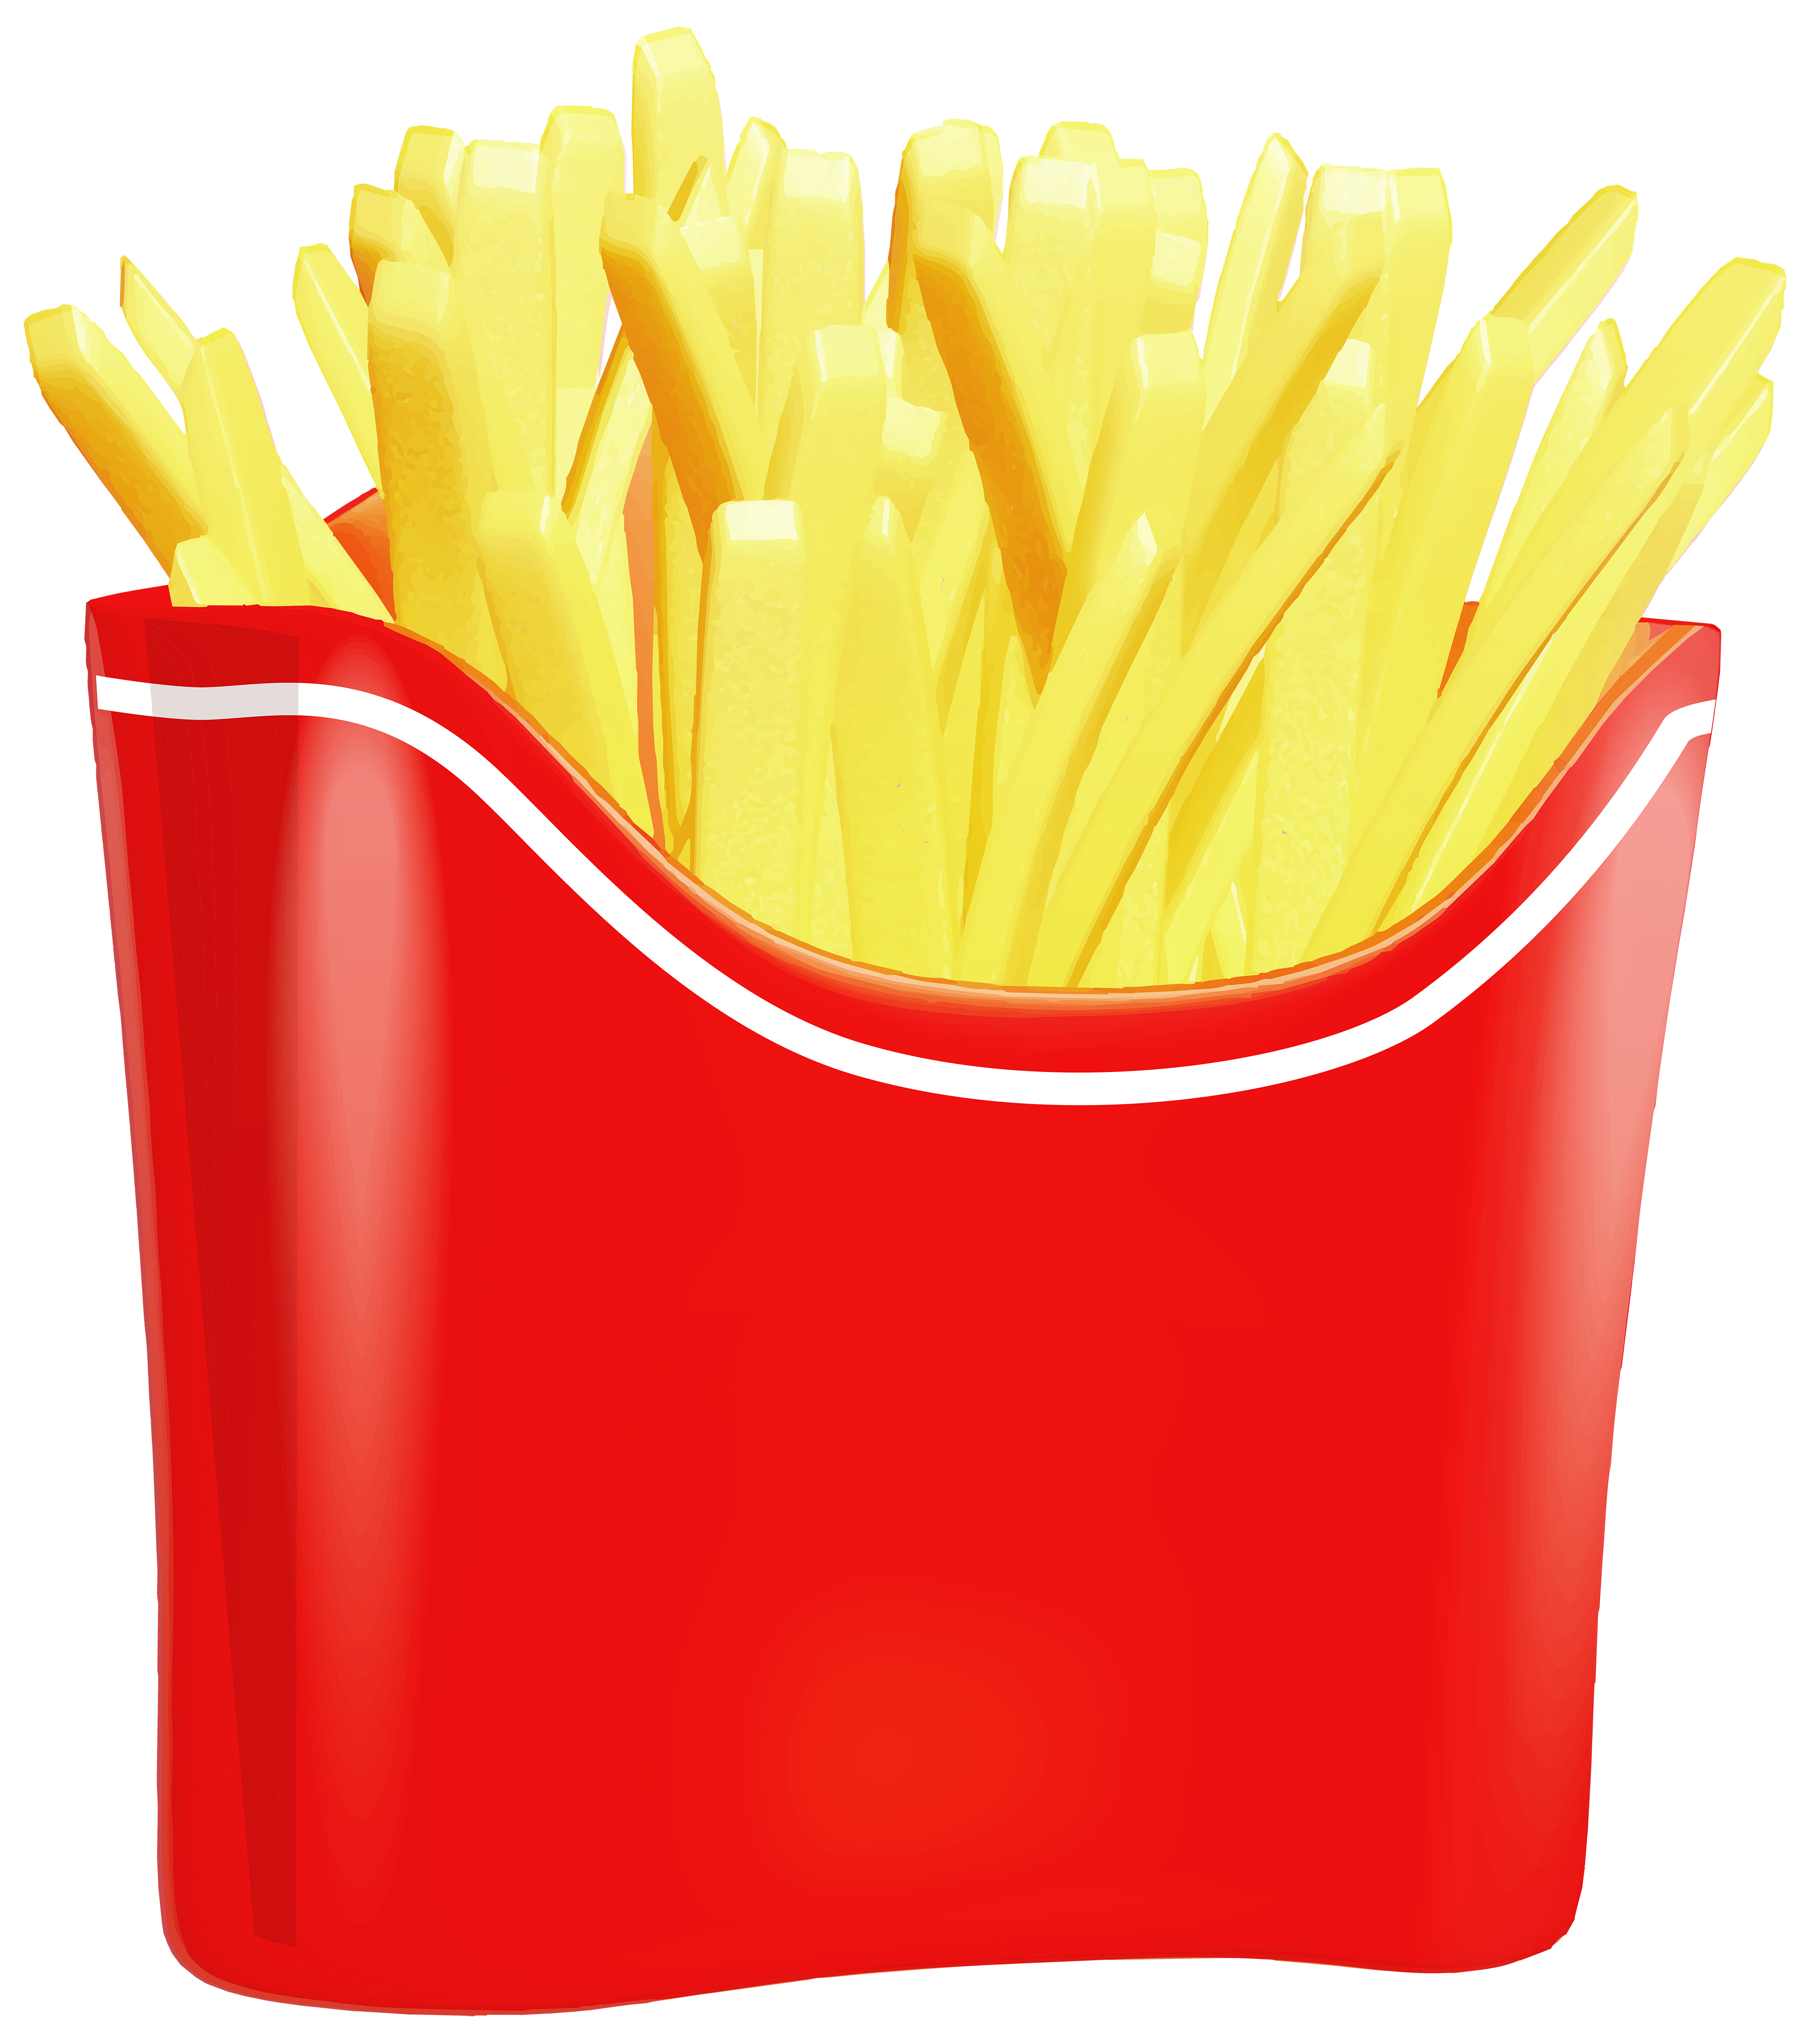 French Fries clipart Clip WEB Fries Savoronmorehead PNG